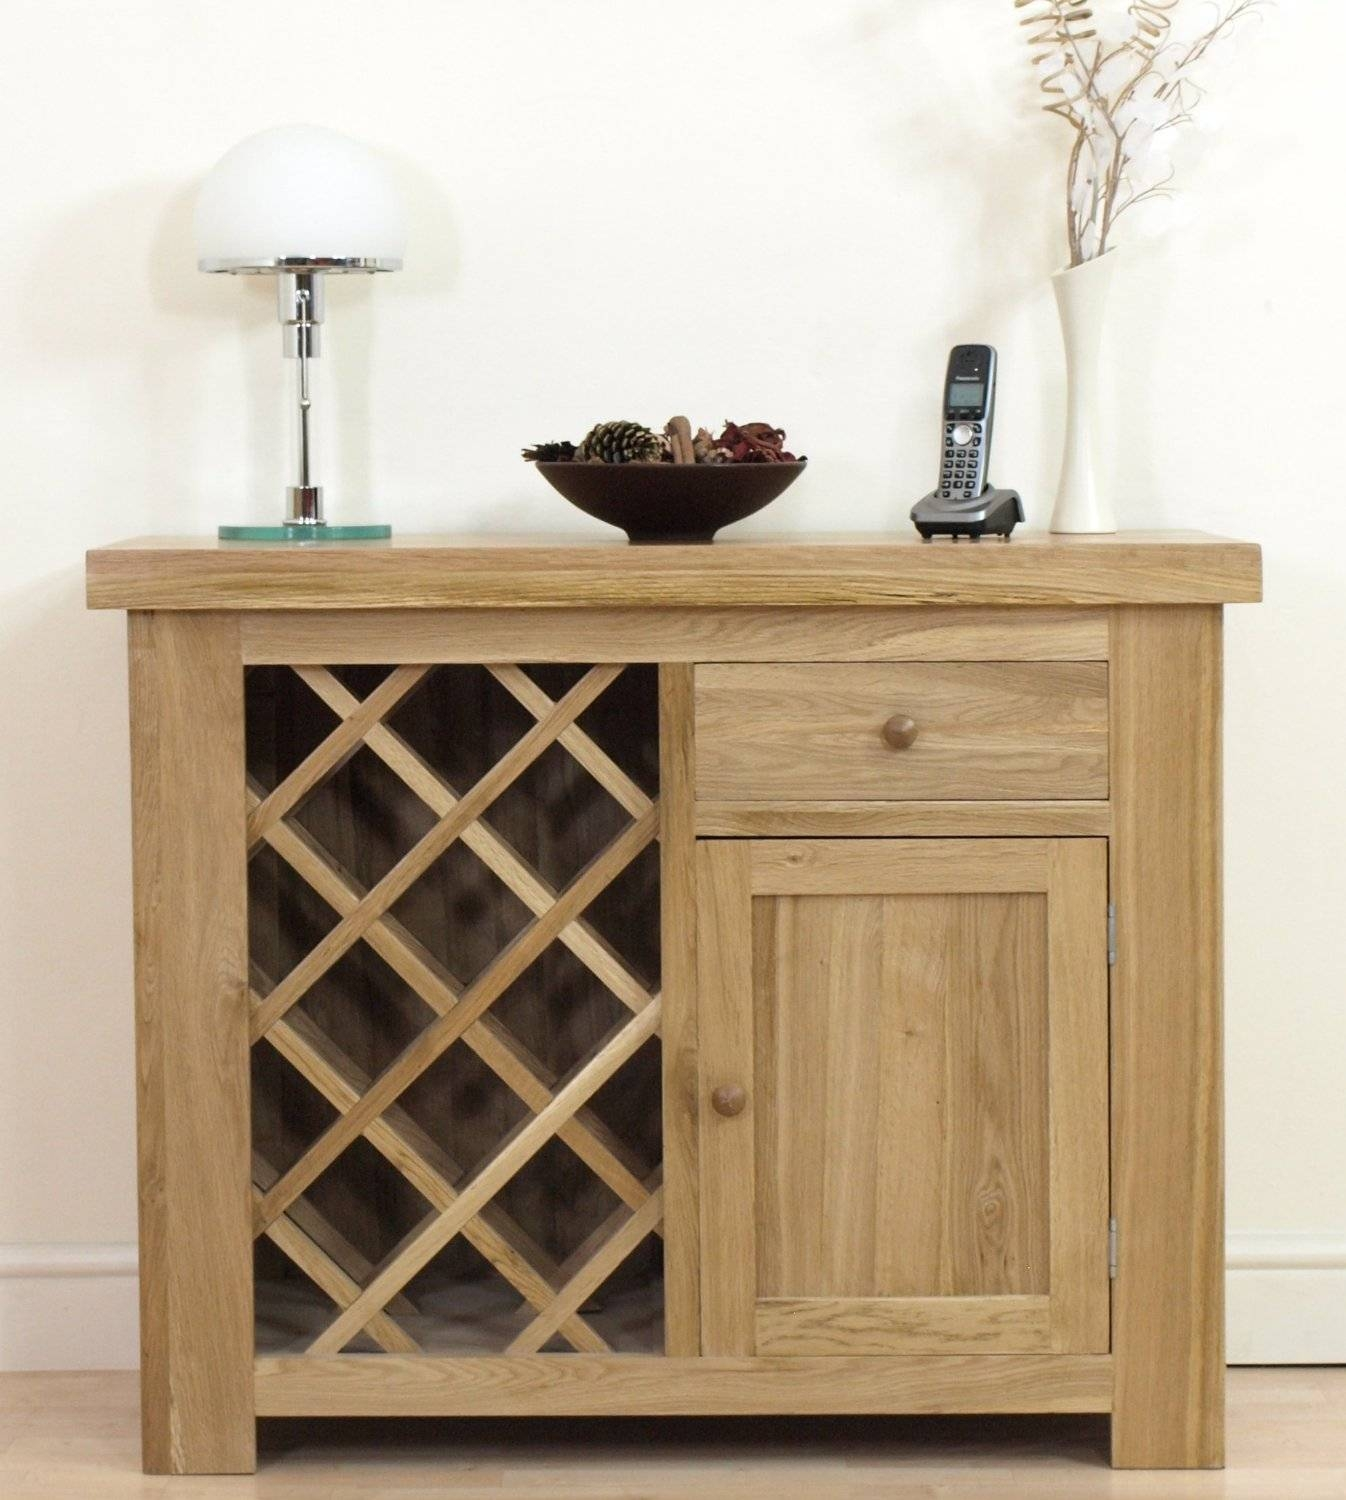 Oak Sideboard With Wine Rack | Home Design Ideas intended for Sideboards With Wine Rack (Image 9 of 15)